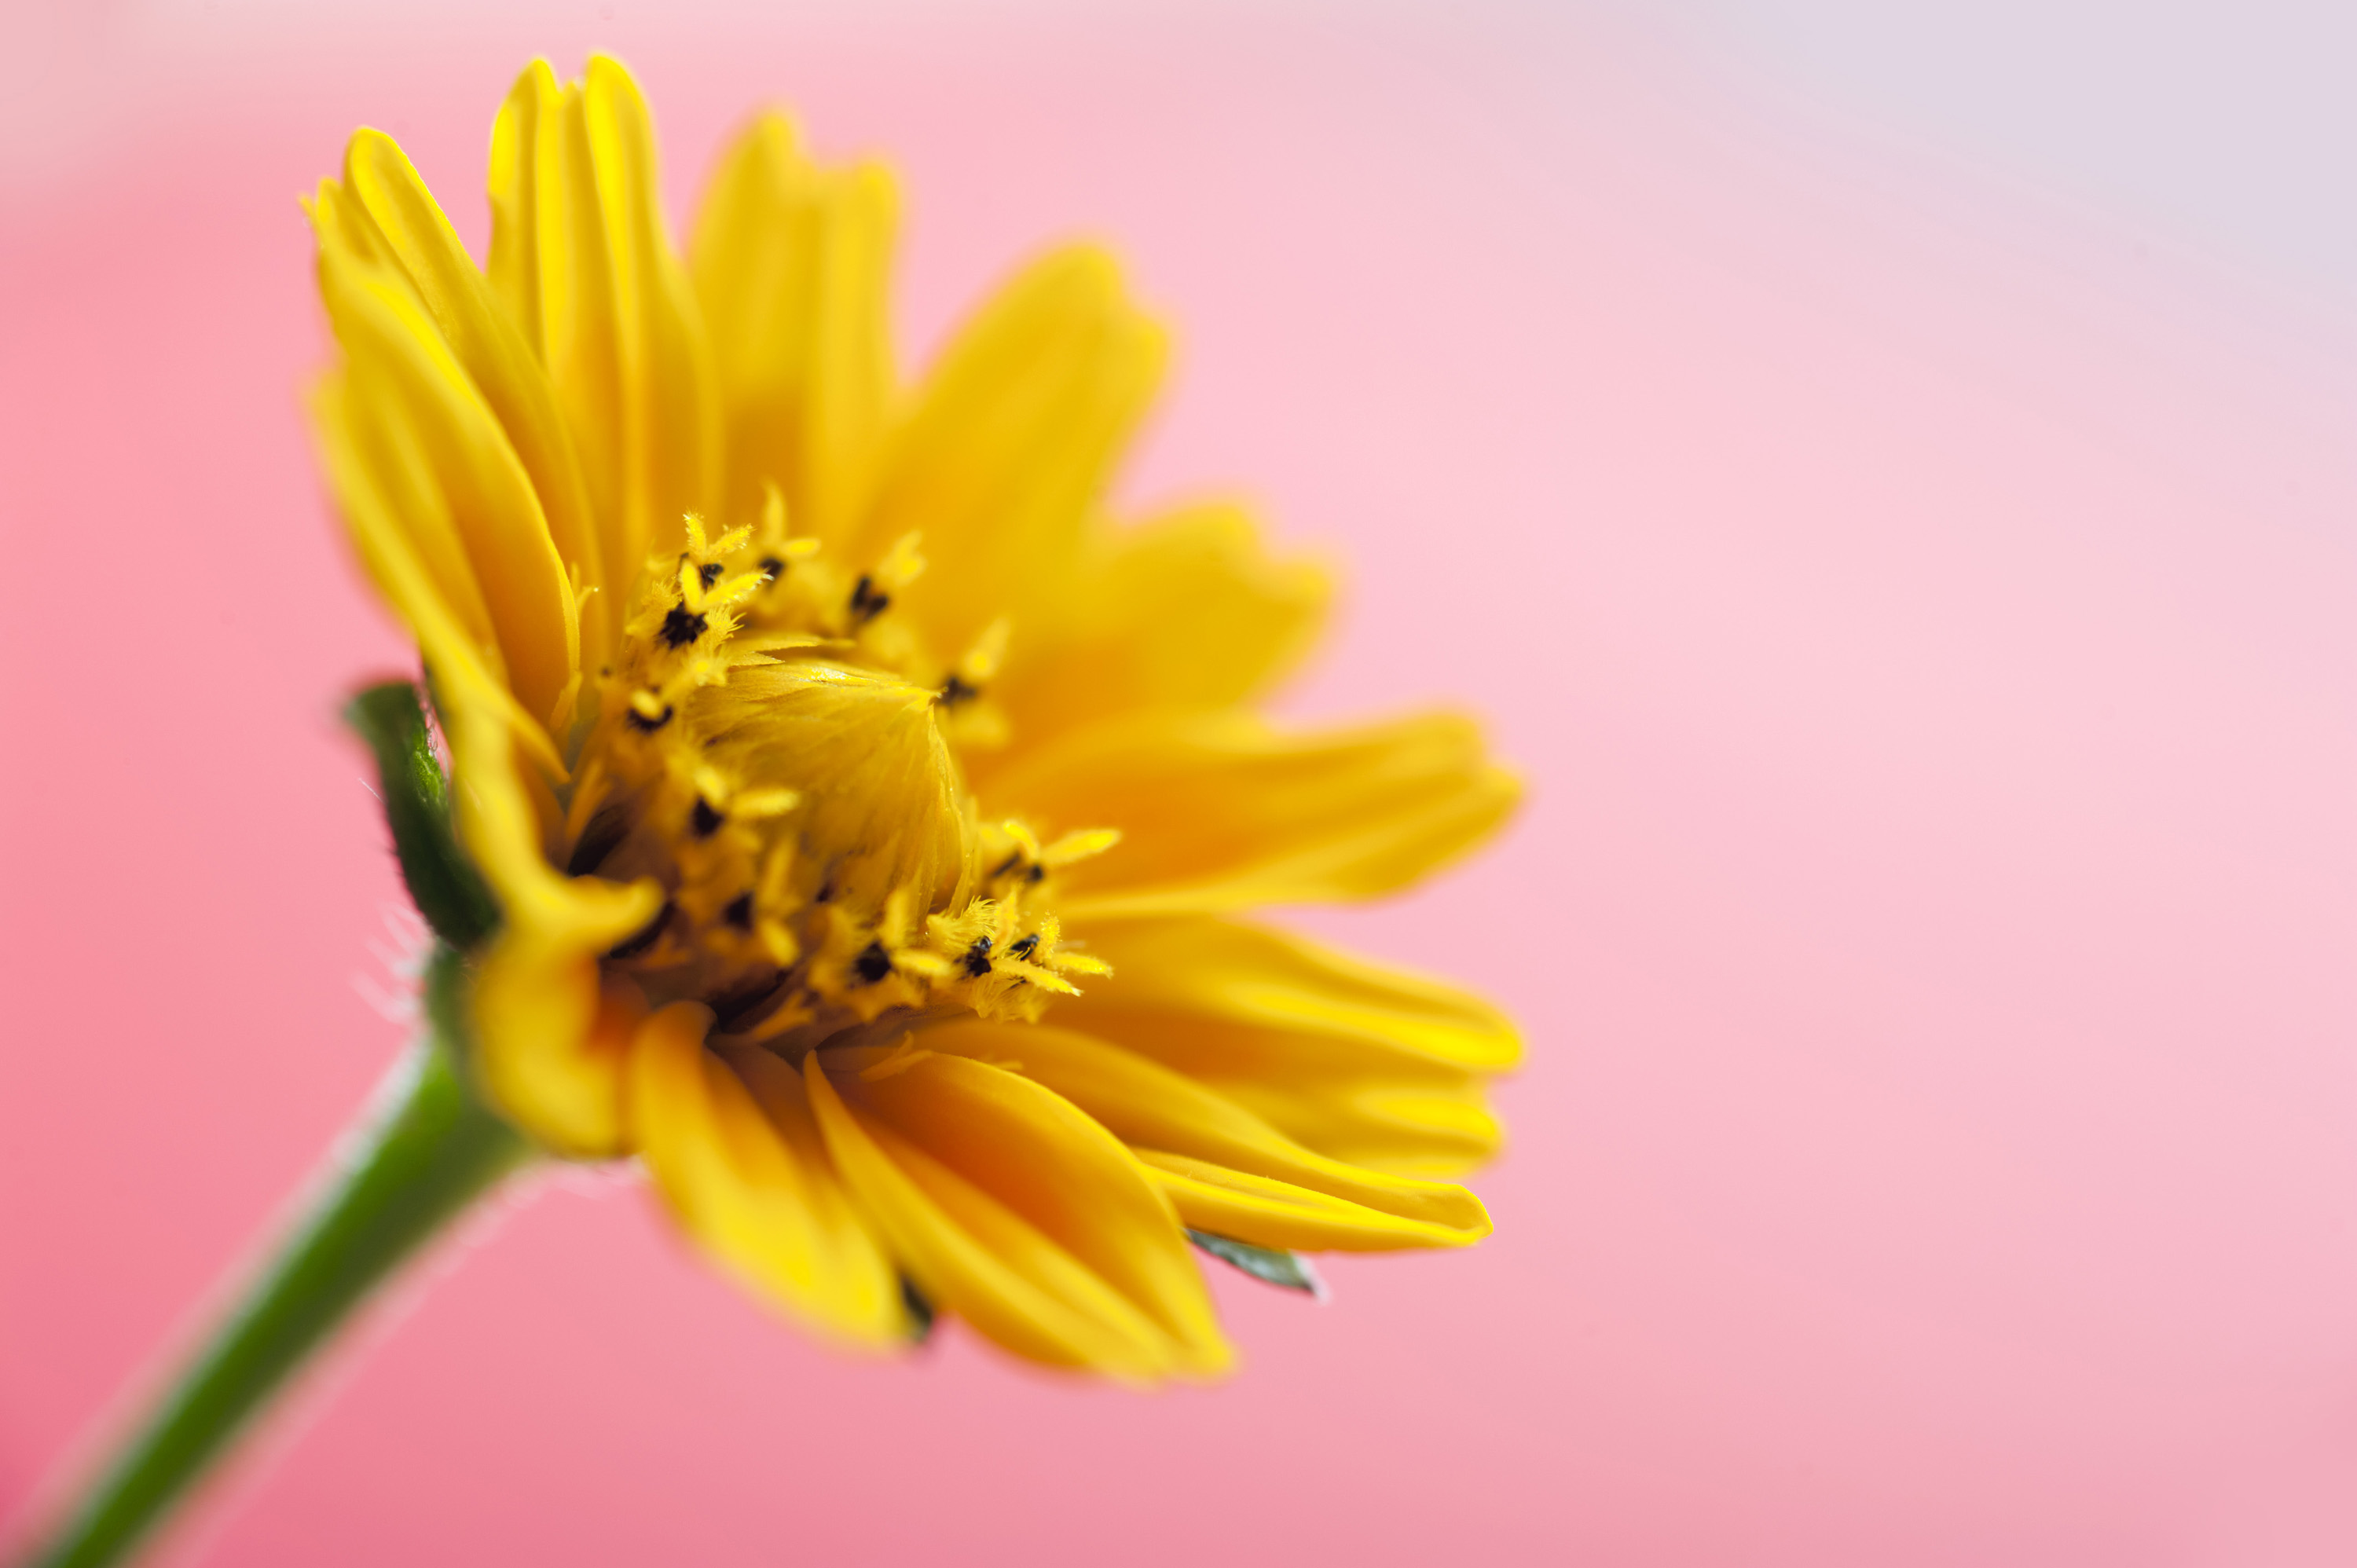 Spring yellow flower on pink background Creative Commons ...